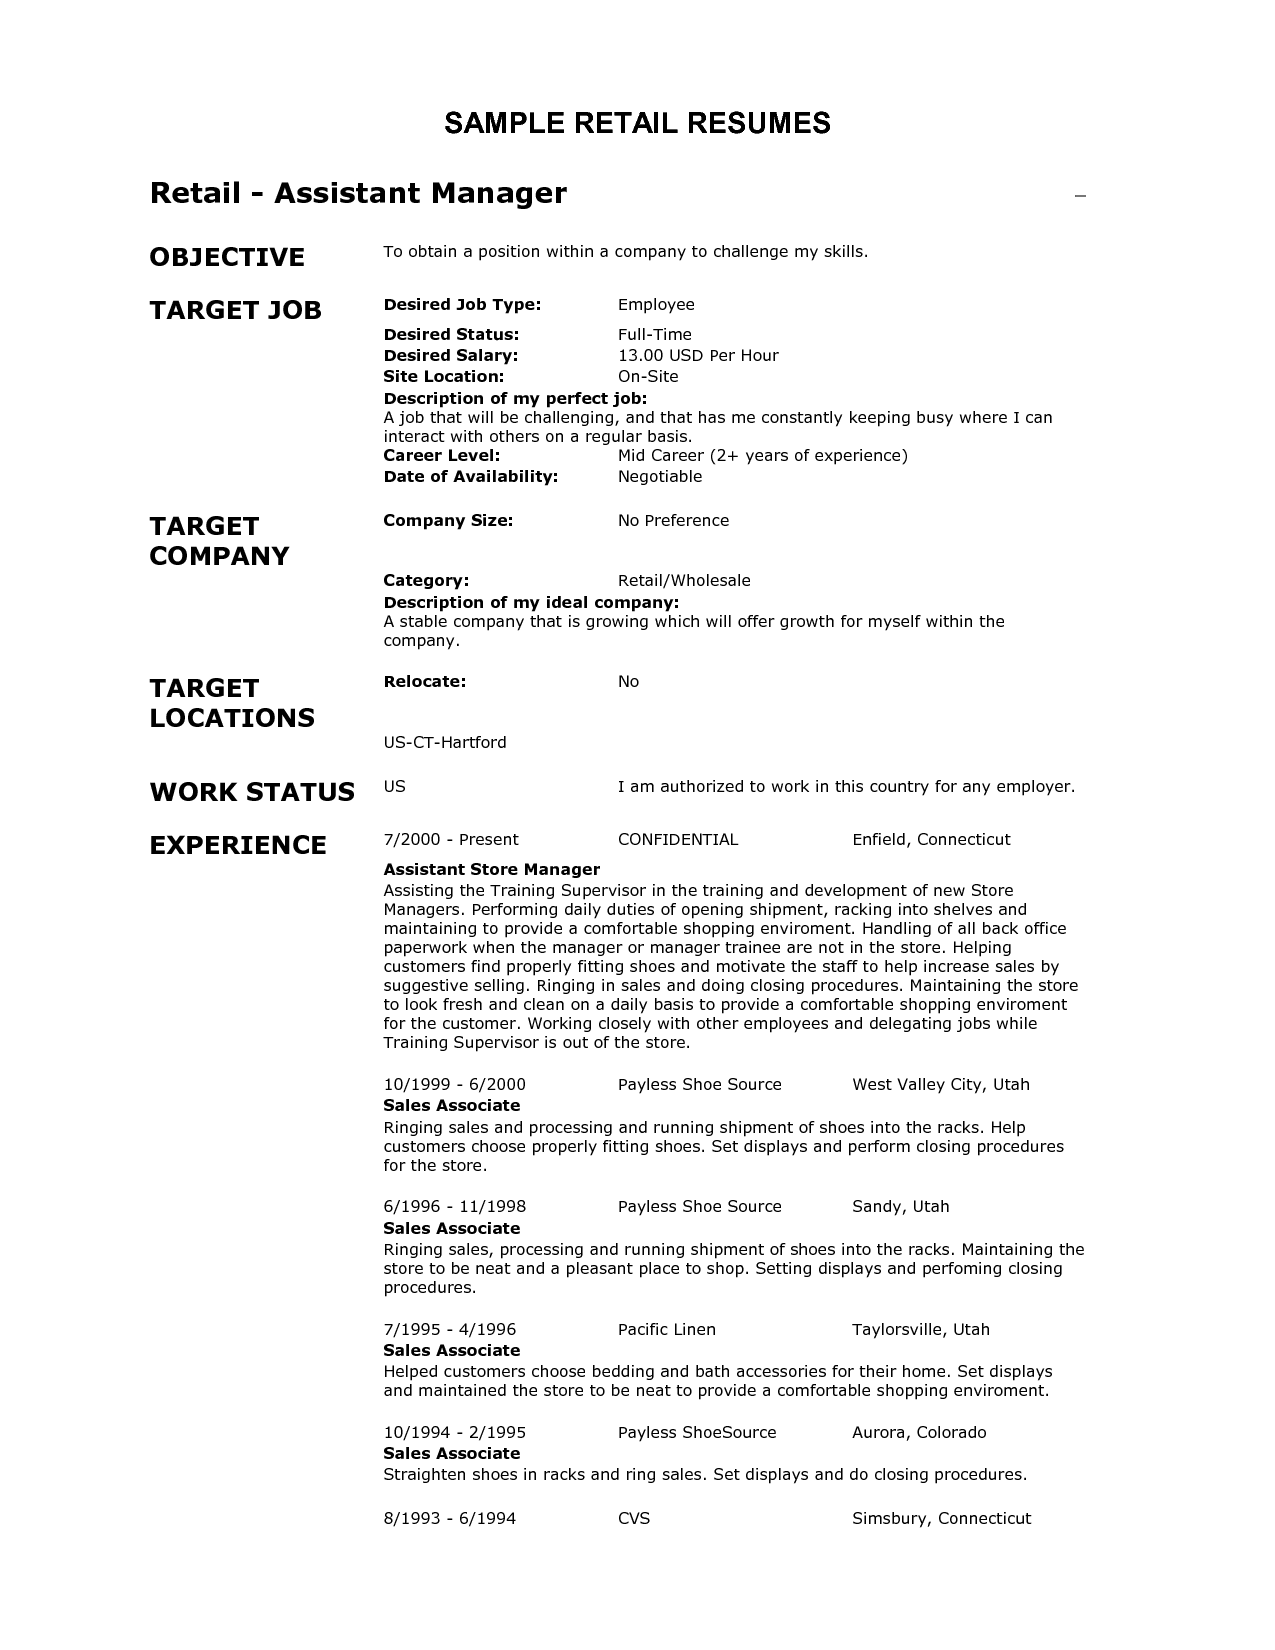 10 best resume objective samples samplebusinessresume for Sample resume for assistant manager in retail